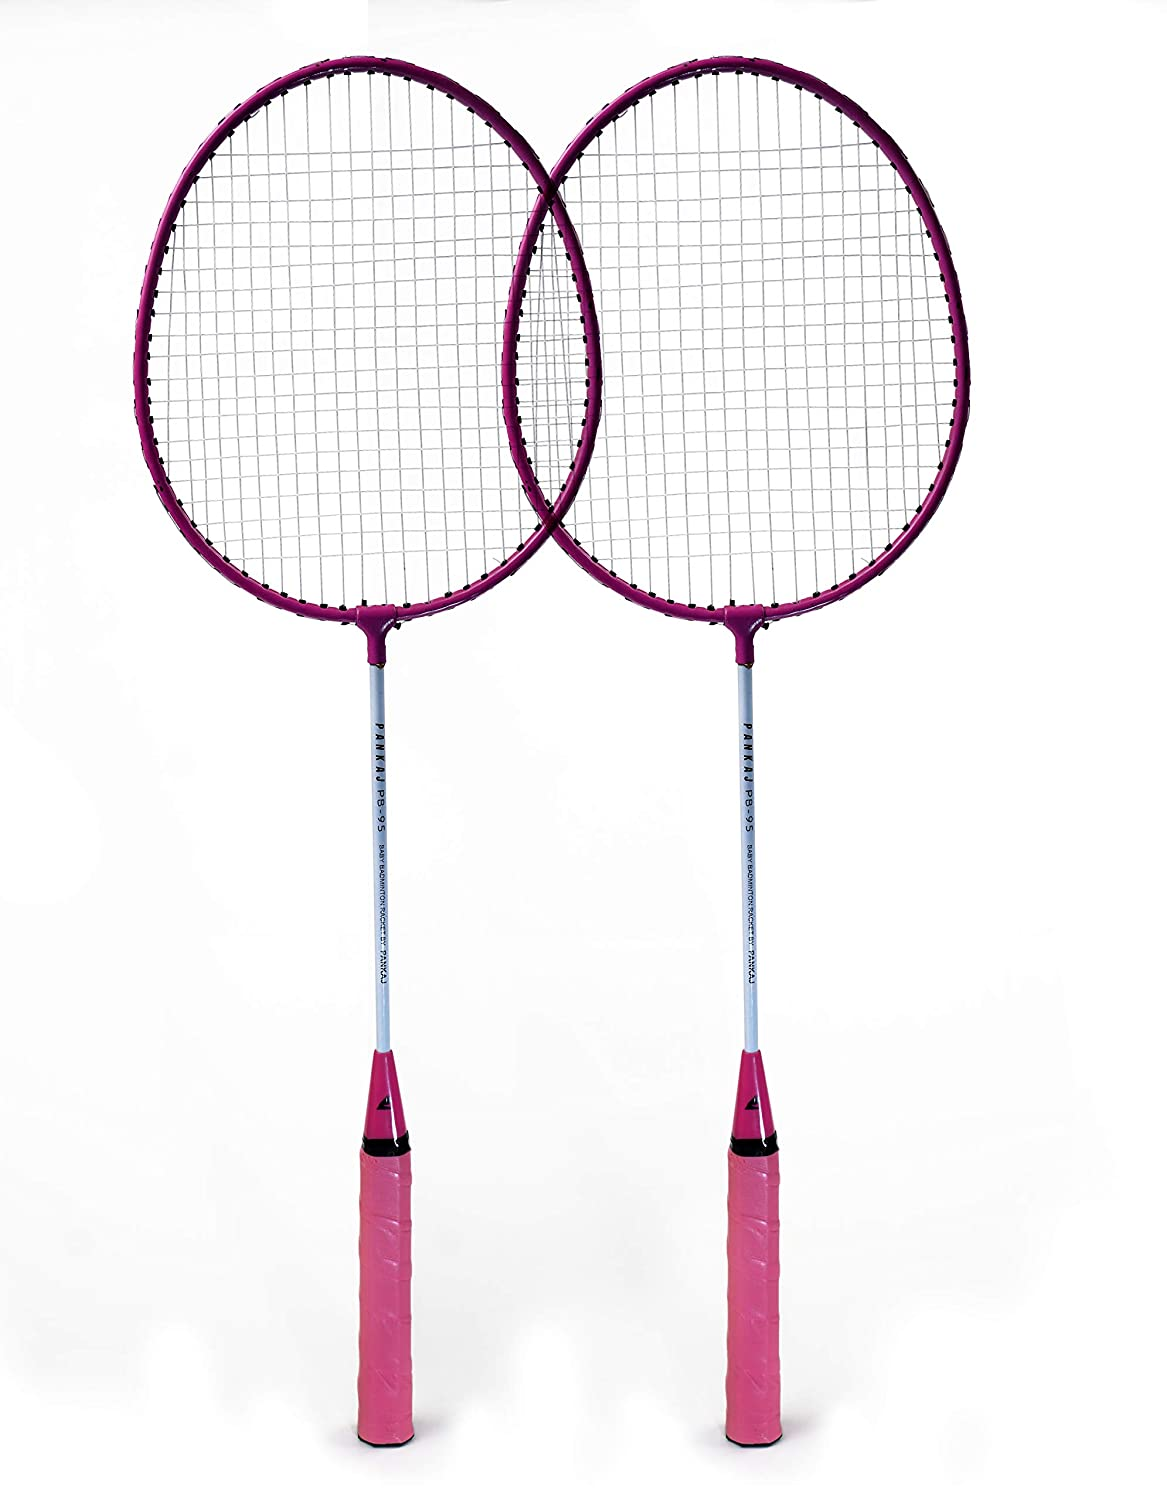 Badminton Racket - PB 95 - Pack for 2 (Pink)